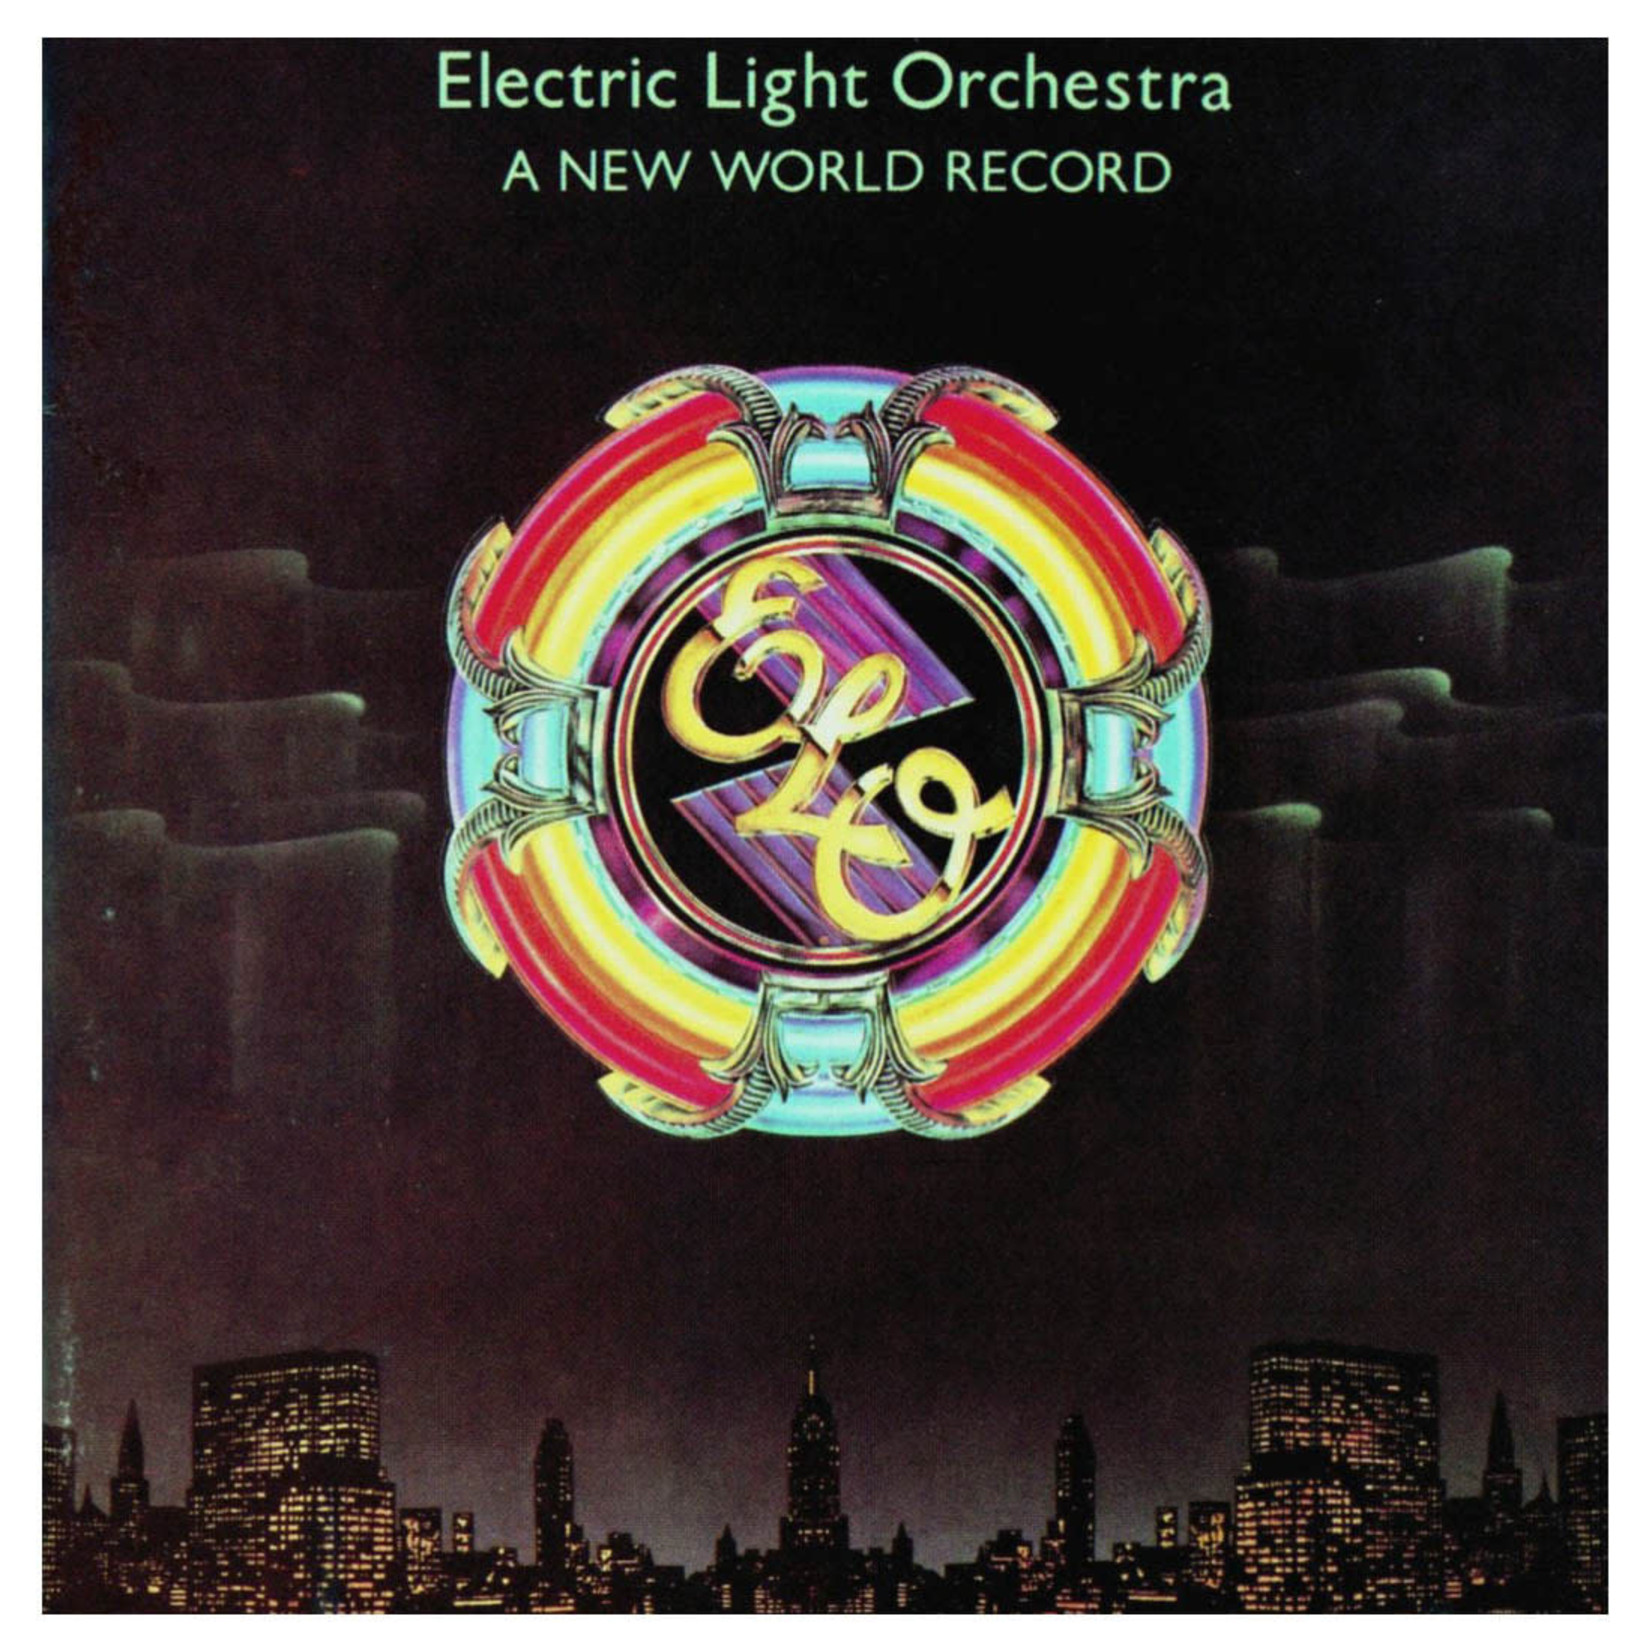 [Vintage] Electric Light Orchestra: A New World Record